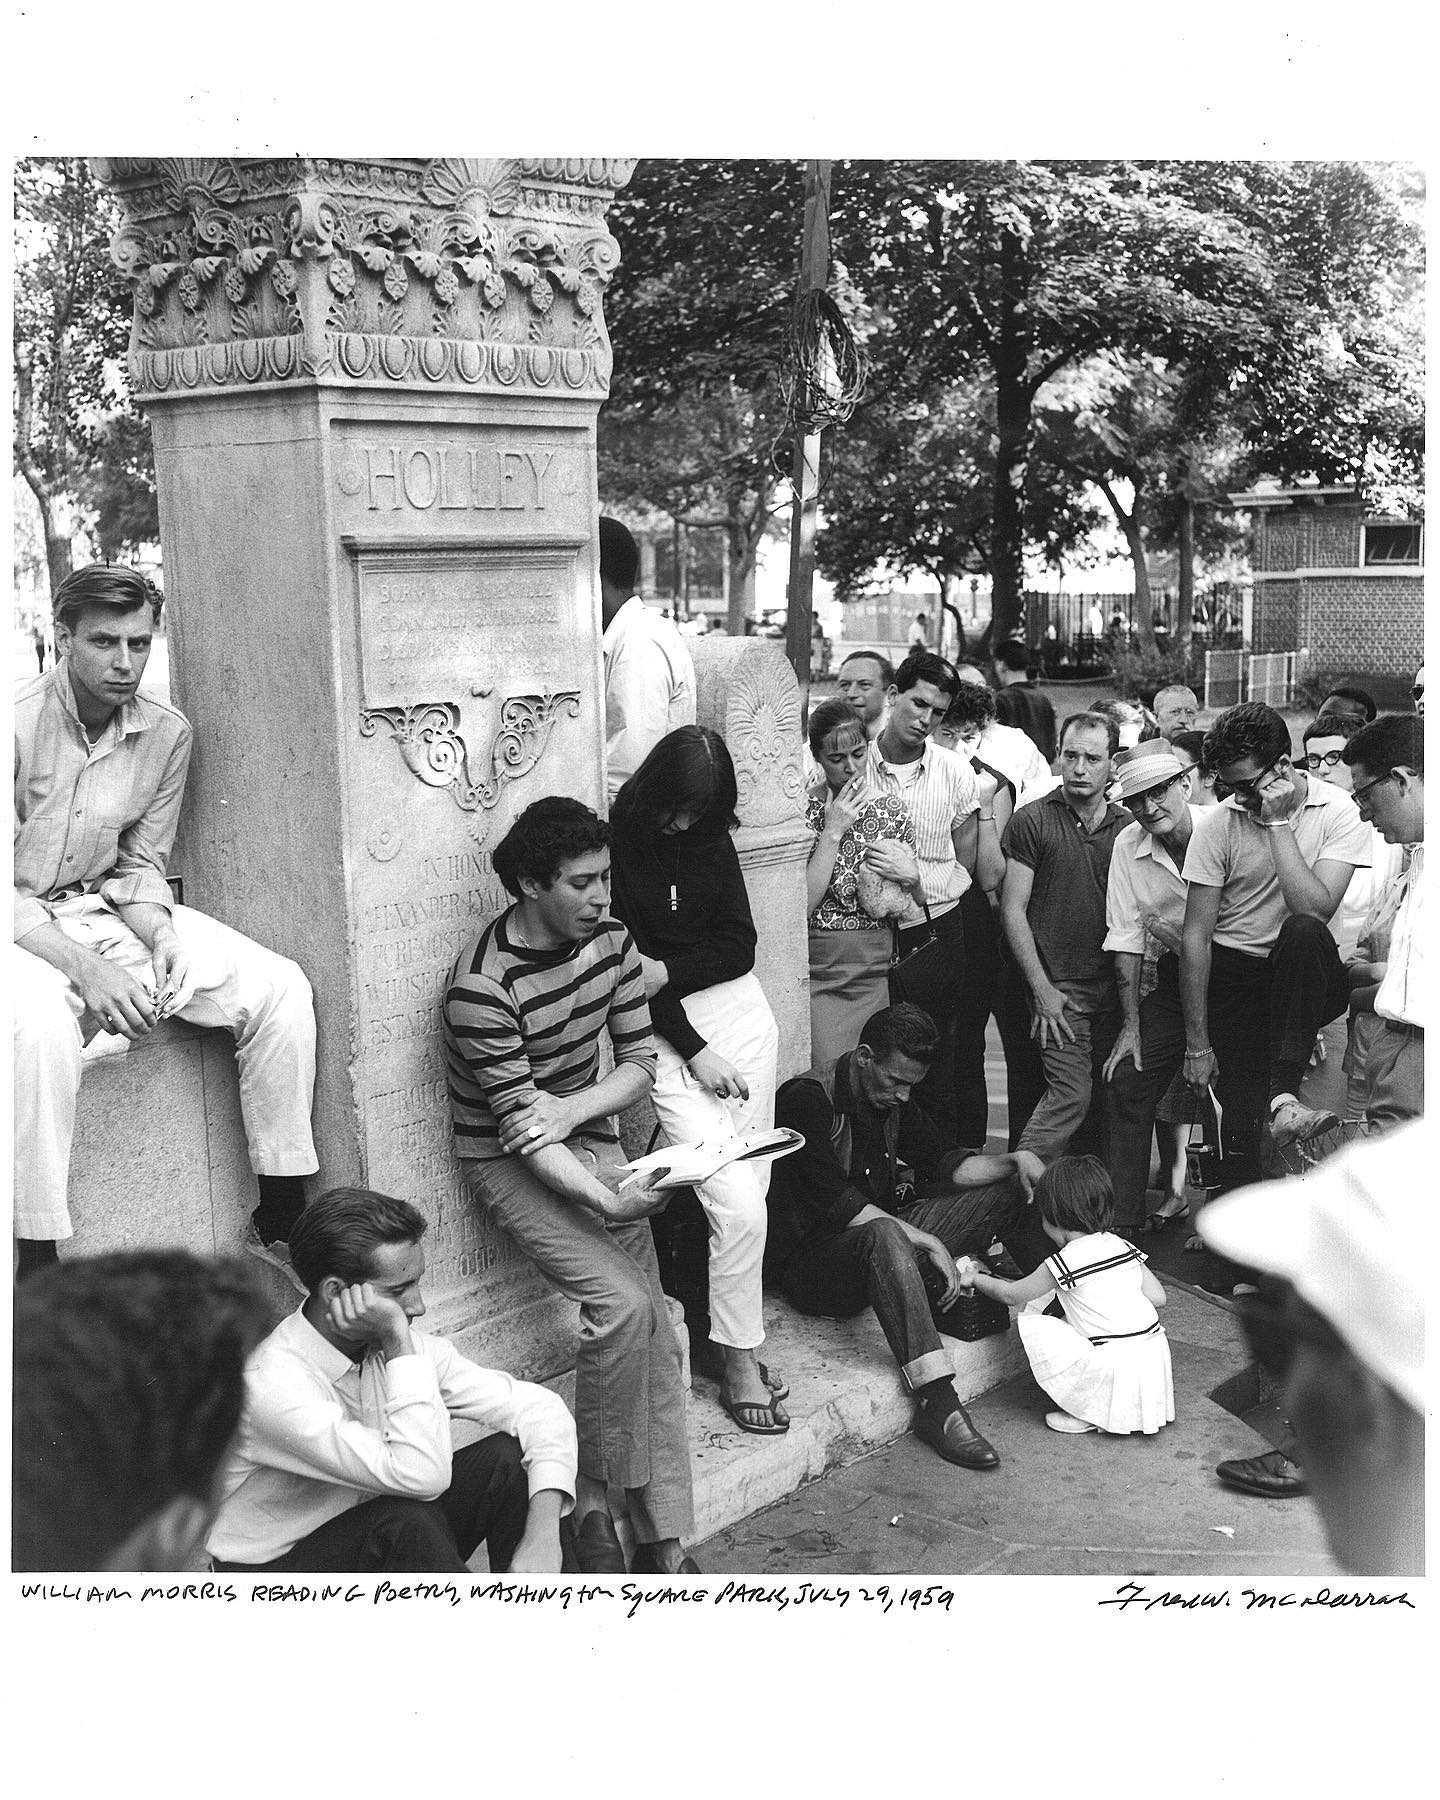 #OnThisDay in 1959, William Morris reads poetry aloud in Washington Square Park while his friend, Malcolm Soule, looks on. The week before, police had arrested Morris on a disorderly conduct charge for attracting a crowd.  © Fred W. McDarrah/MUUS Collection